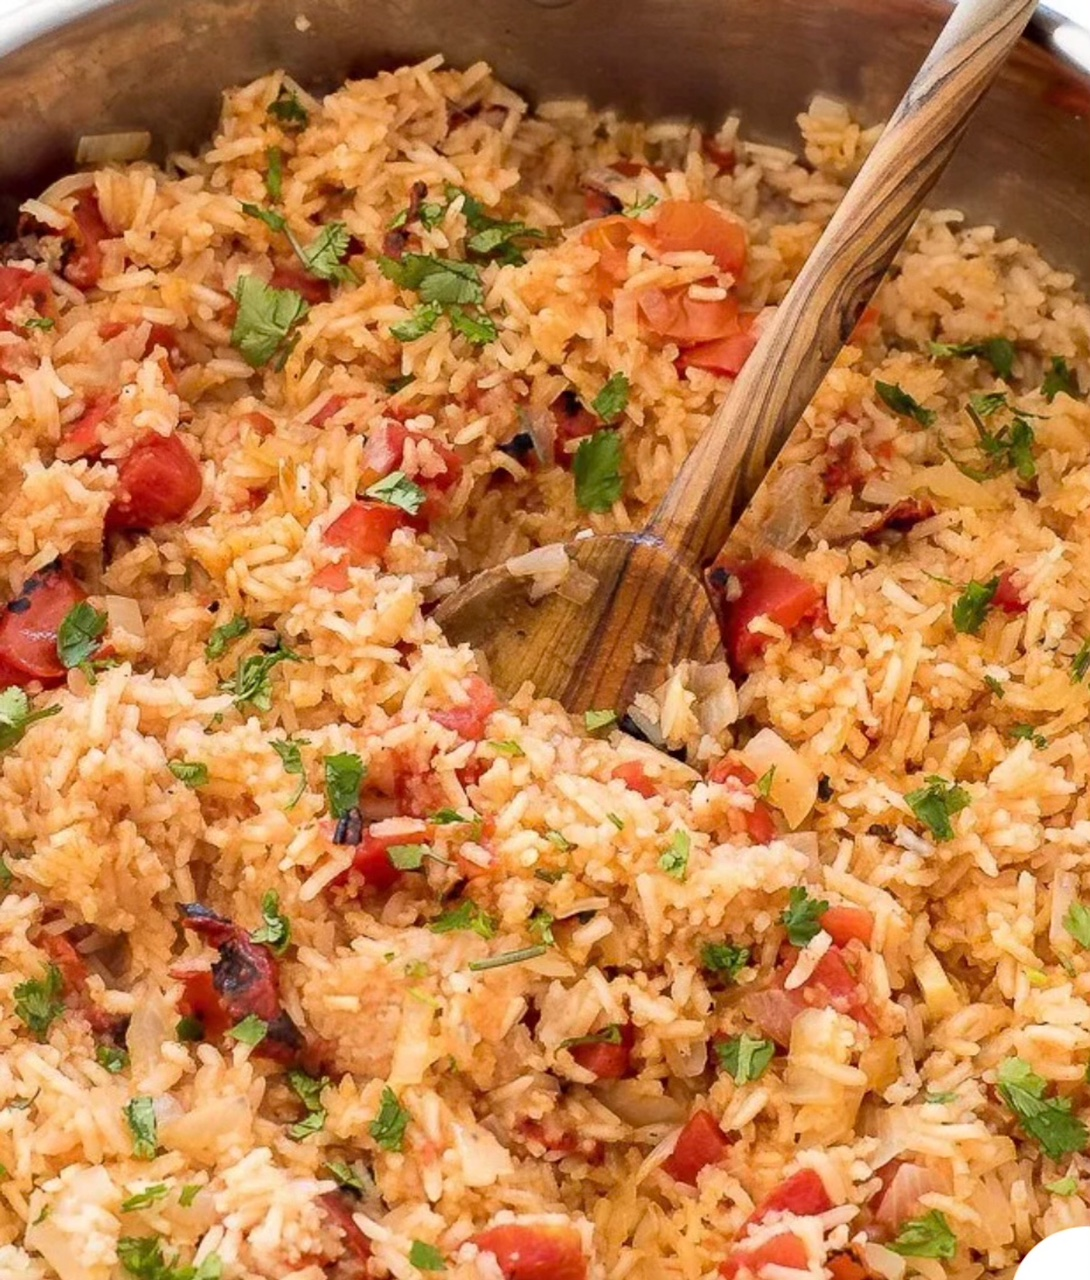 Delicious Spanish Rice, Instant Pot or cooked conventionally*